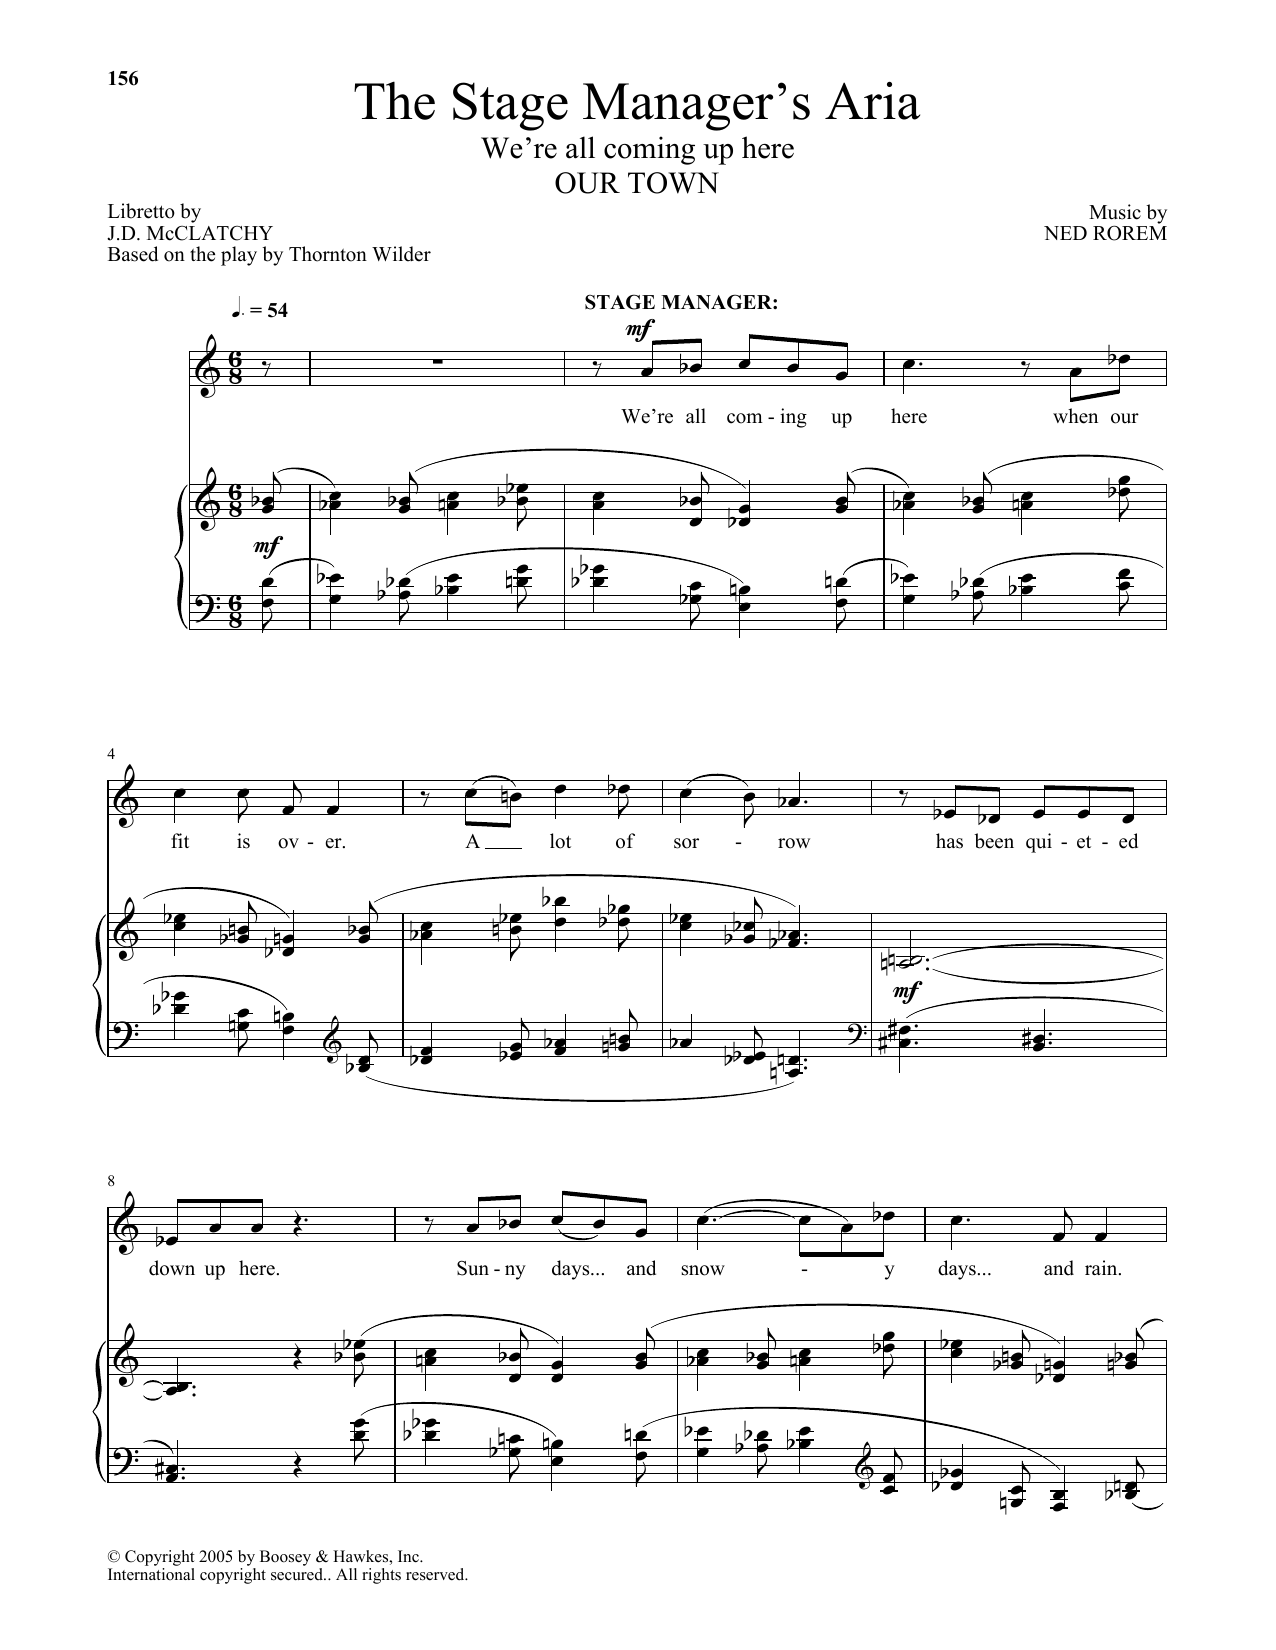 Ned Rorem The Stage Manager's Aria sheet music notes and chords. Download Printable PDF.